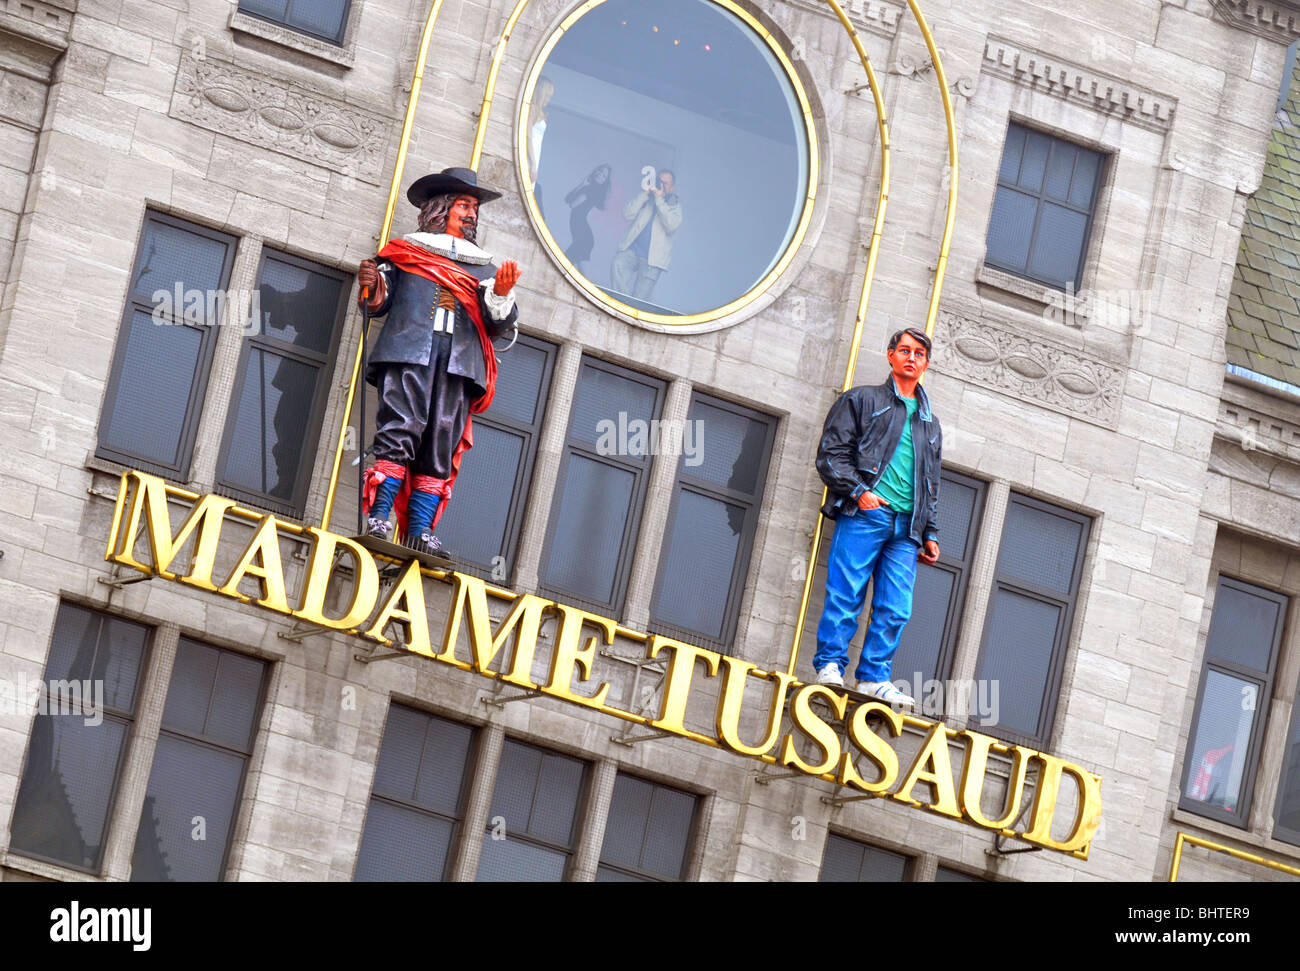 Madame Tussaud museum, Amsterdam, Holland, Netherlands - Stock Image